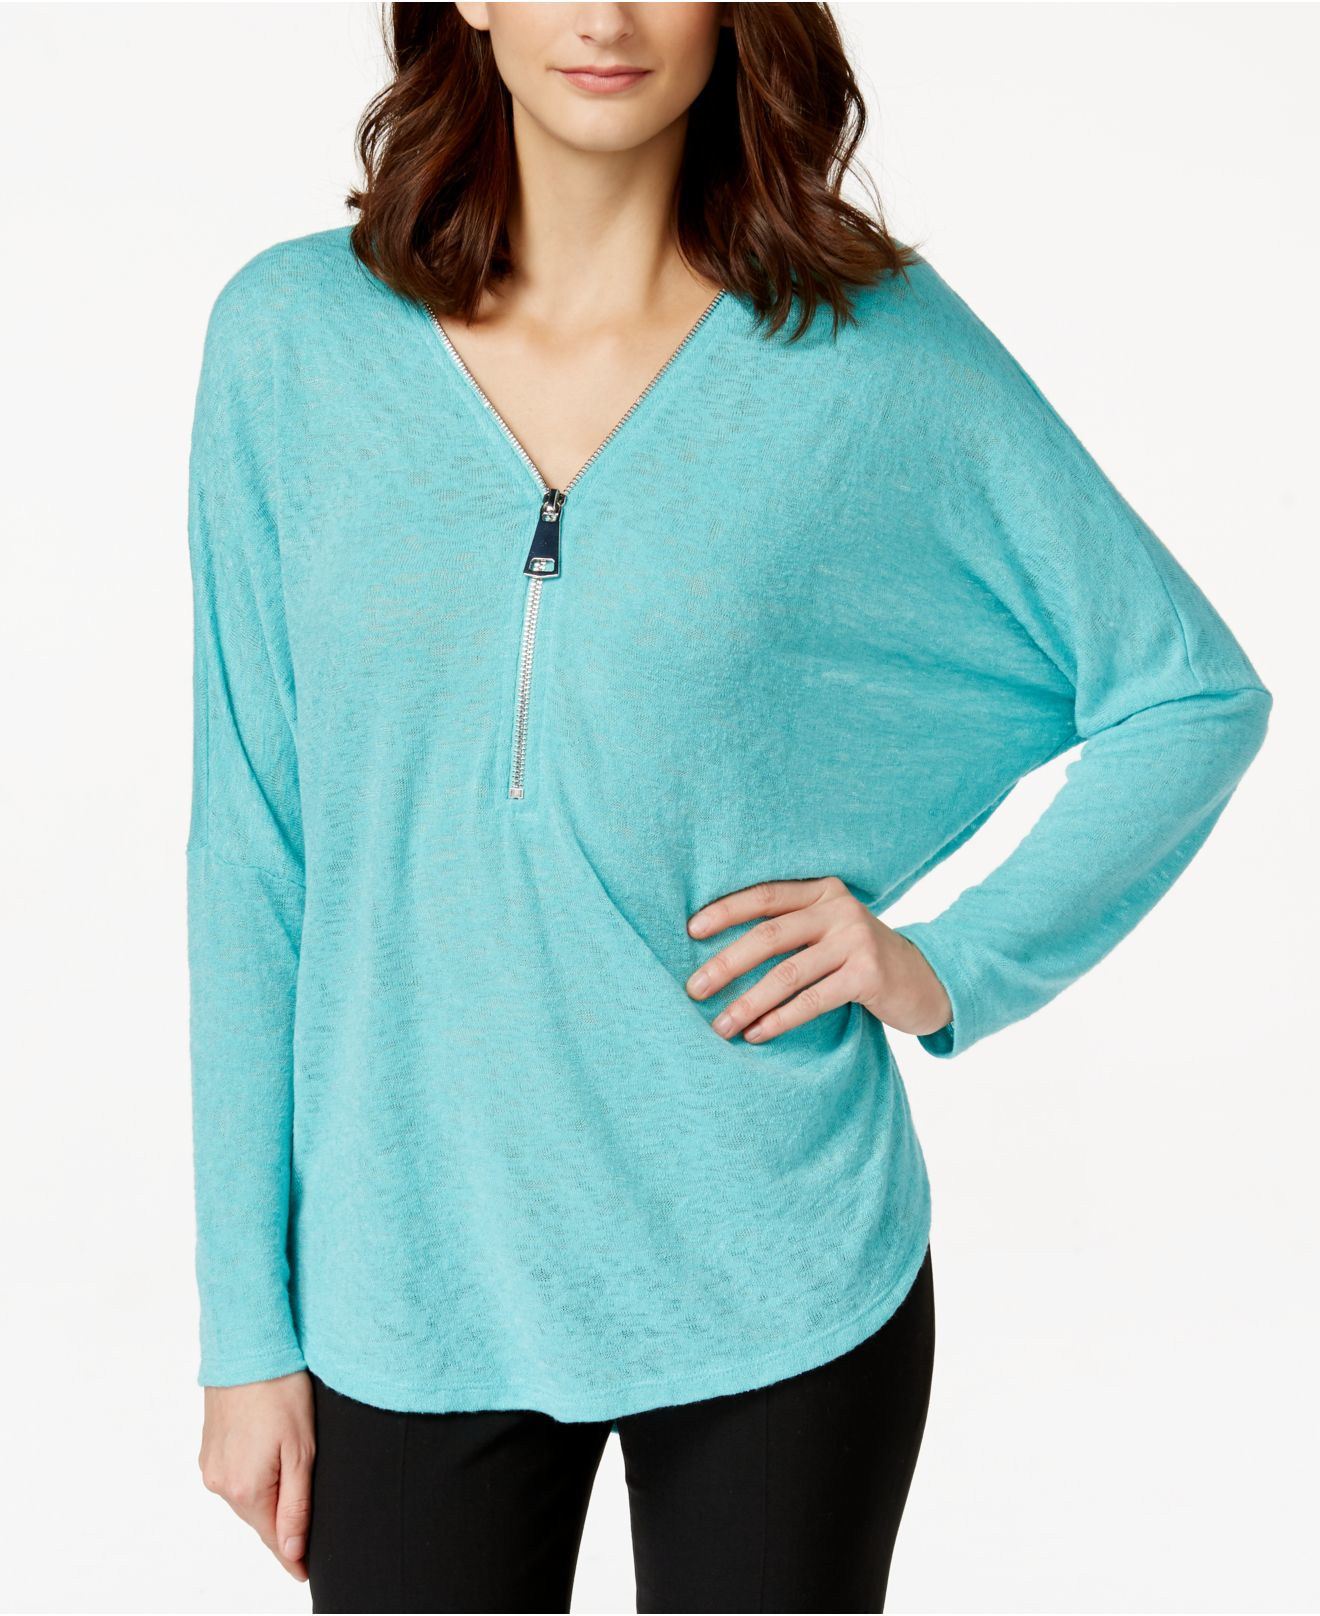 f01baec4d3b0df Lyst - Alfani Dolman-sleeve Zip-front Top in Blue